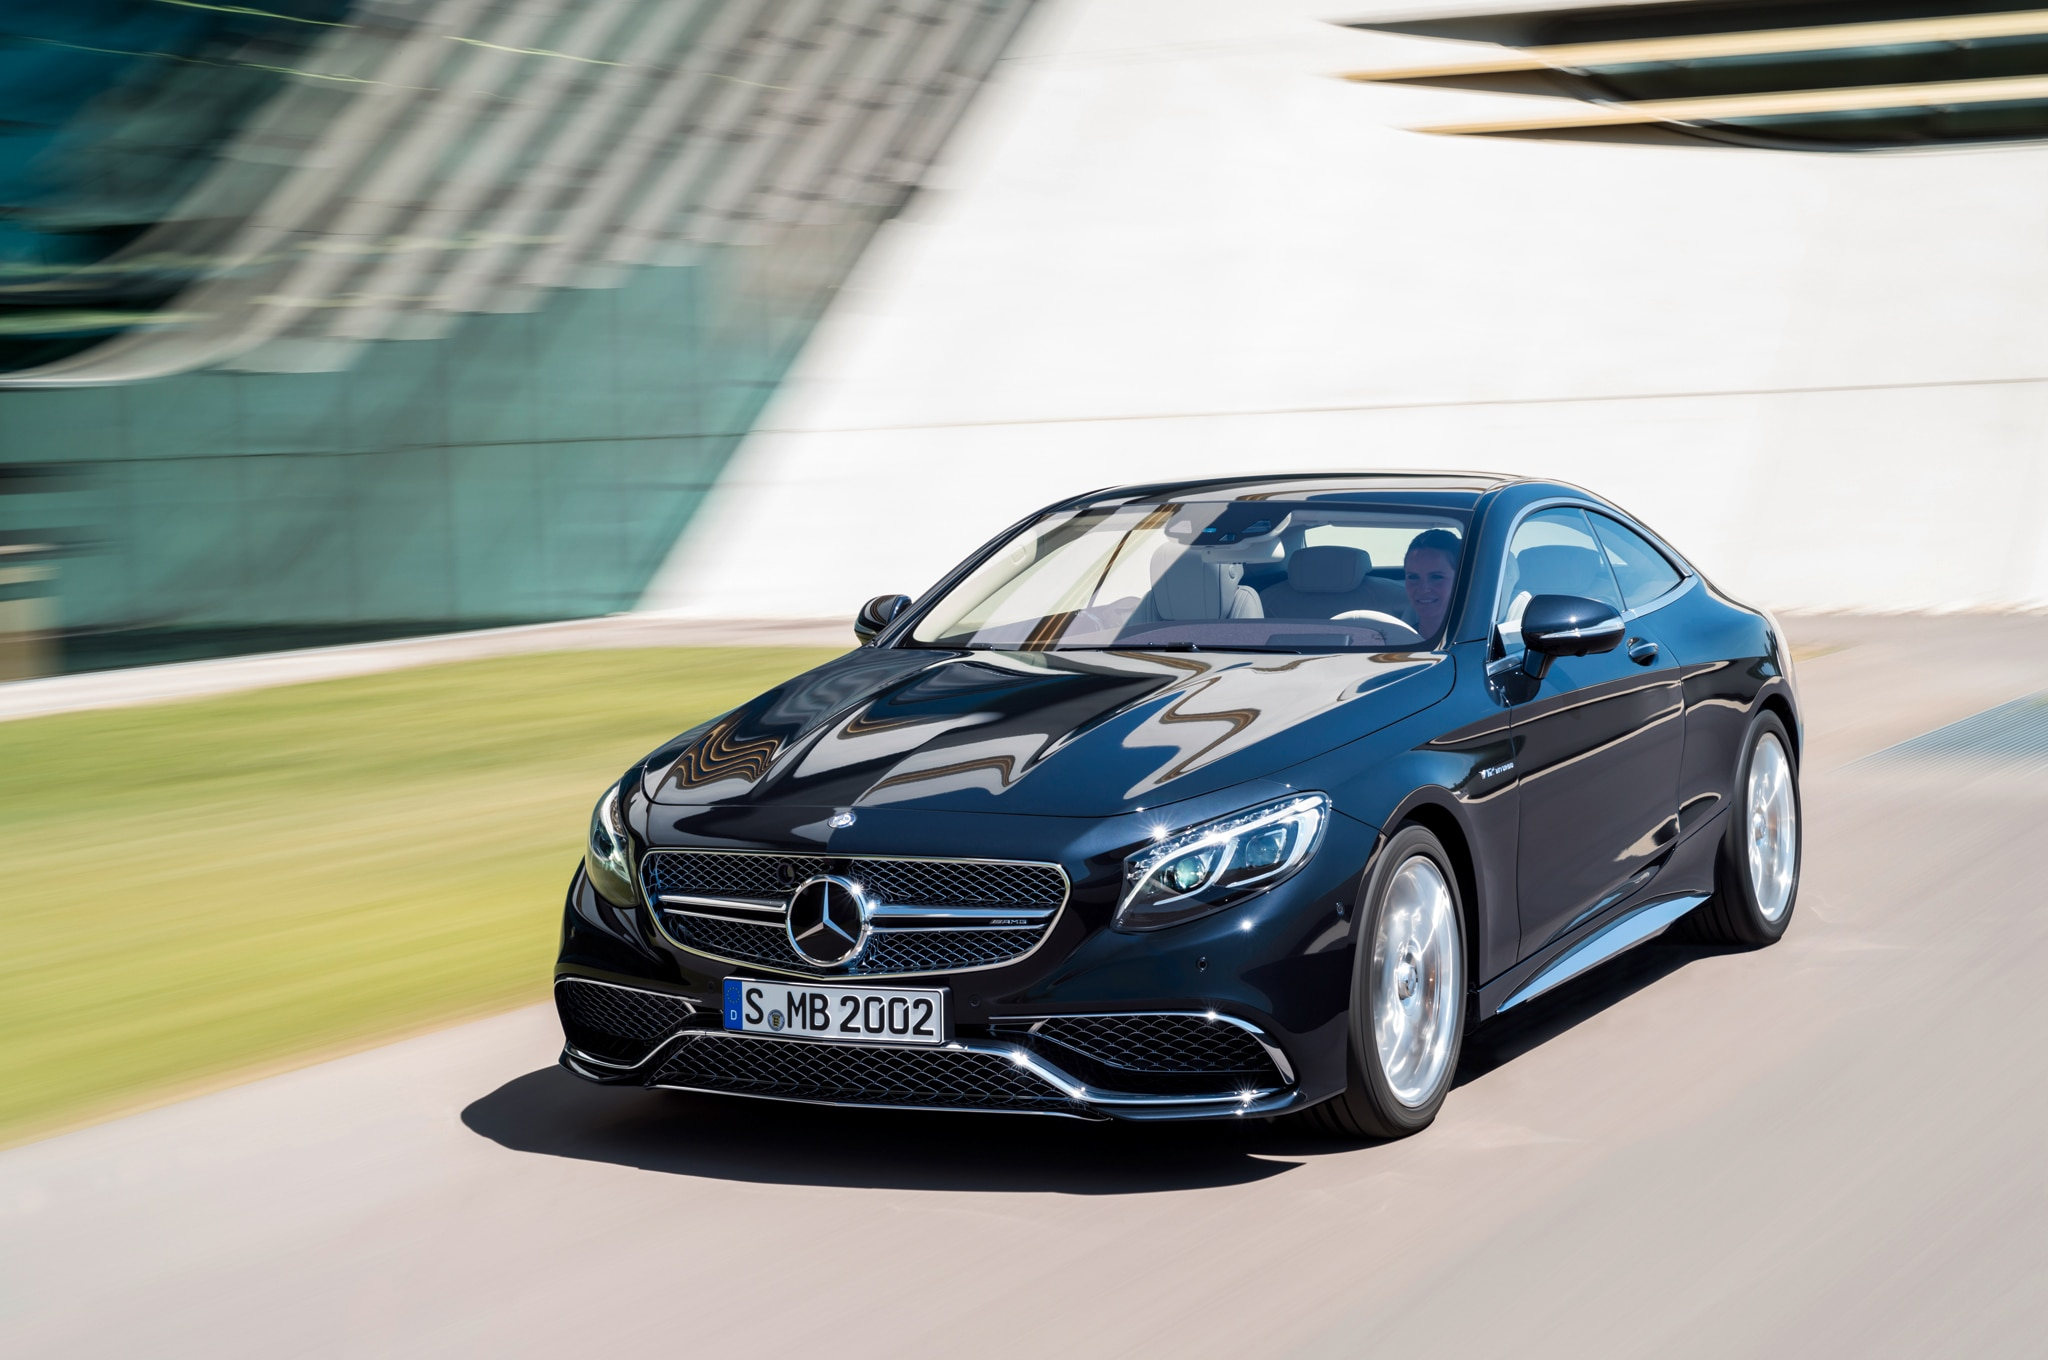 2015 mercedes benz s65 amg coupe front three quarter in motion - 2015 Mercedes S65 Amg